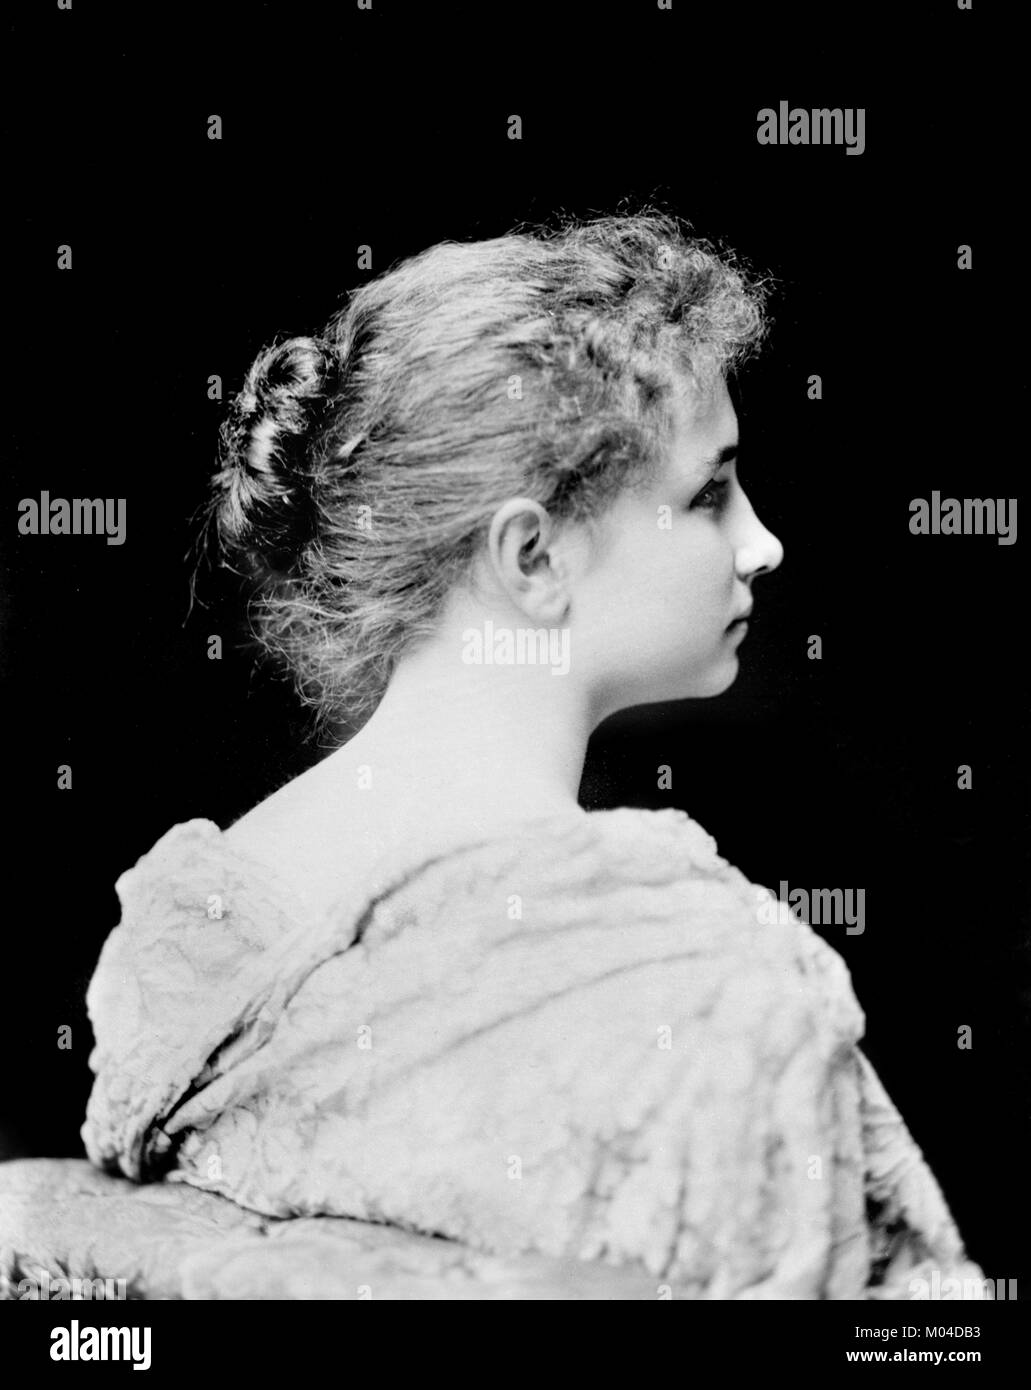 Helen Keller (1880-1968). Phototgraph of the deaf-blind author and political activist by C M Bell, c.1891/94 - Stock Image